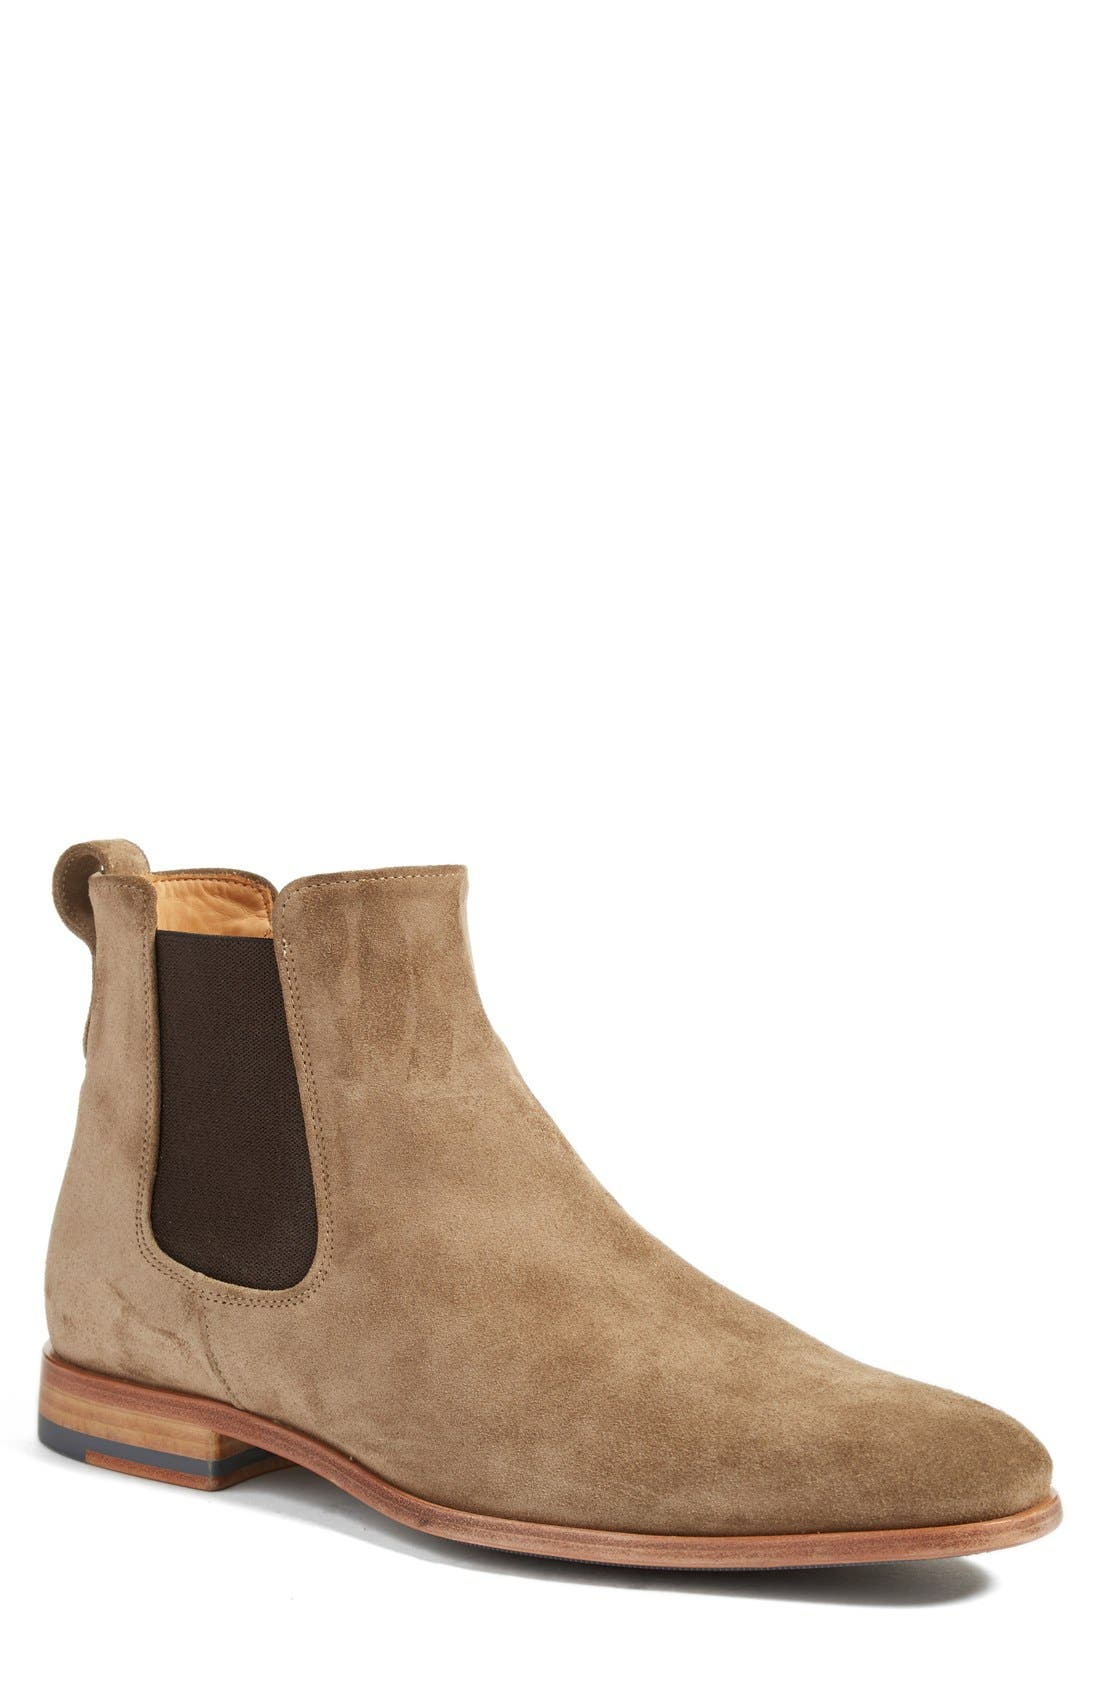 Arthur Chelsea Boot,                             Main thumbnail 4, color,